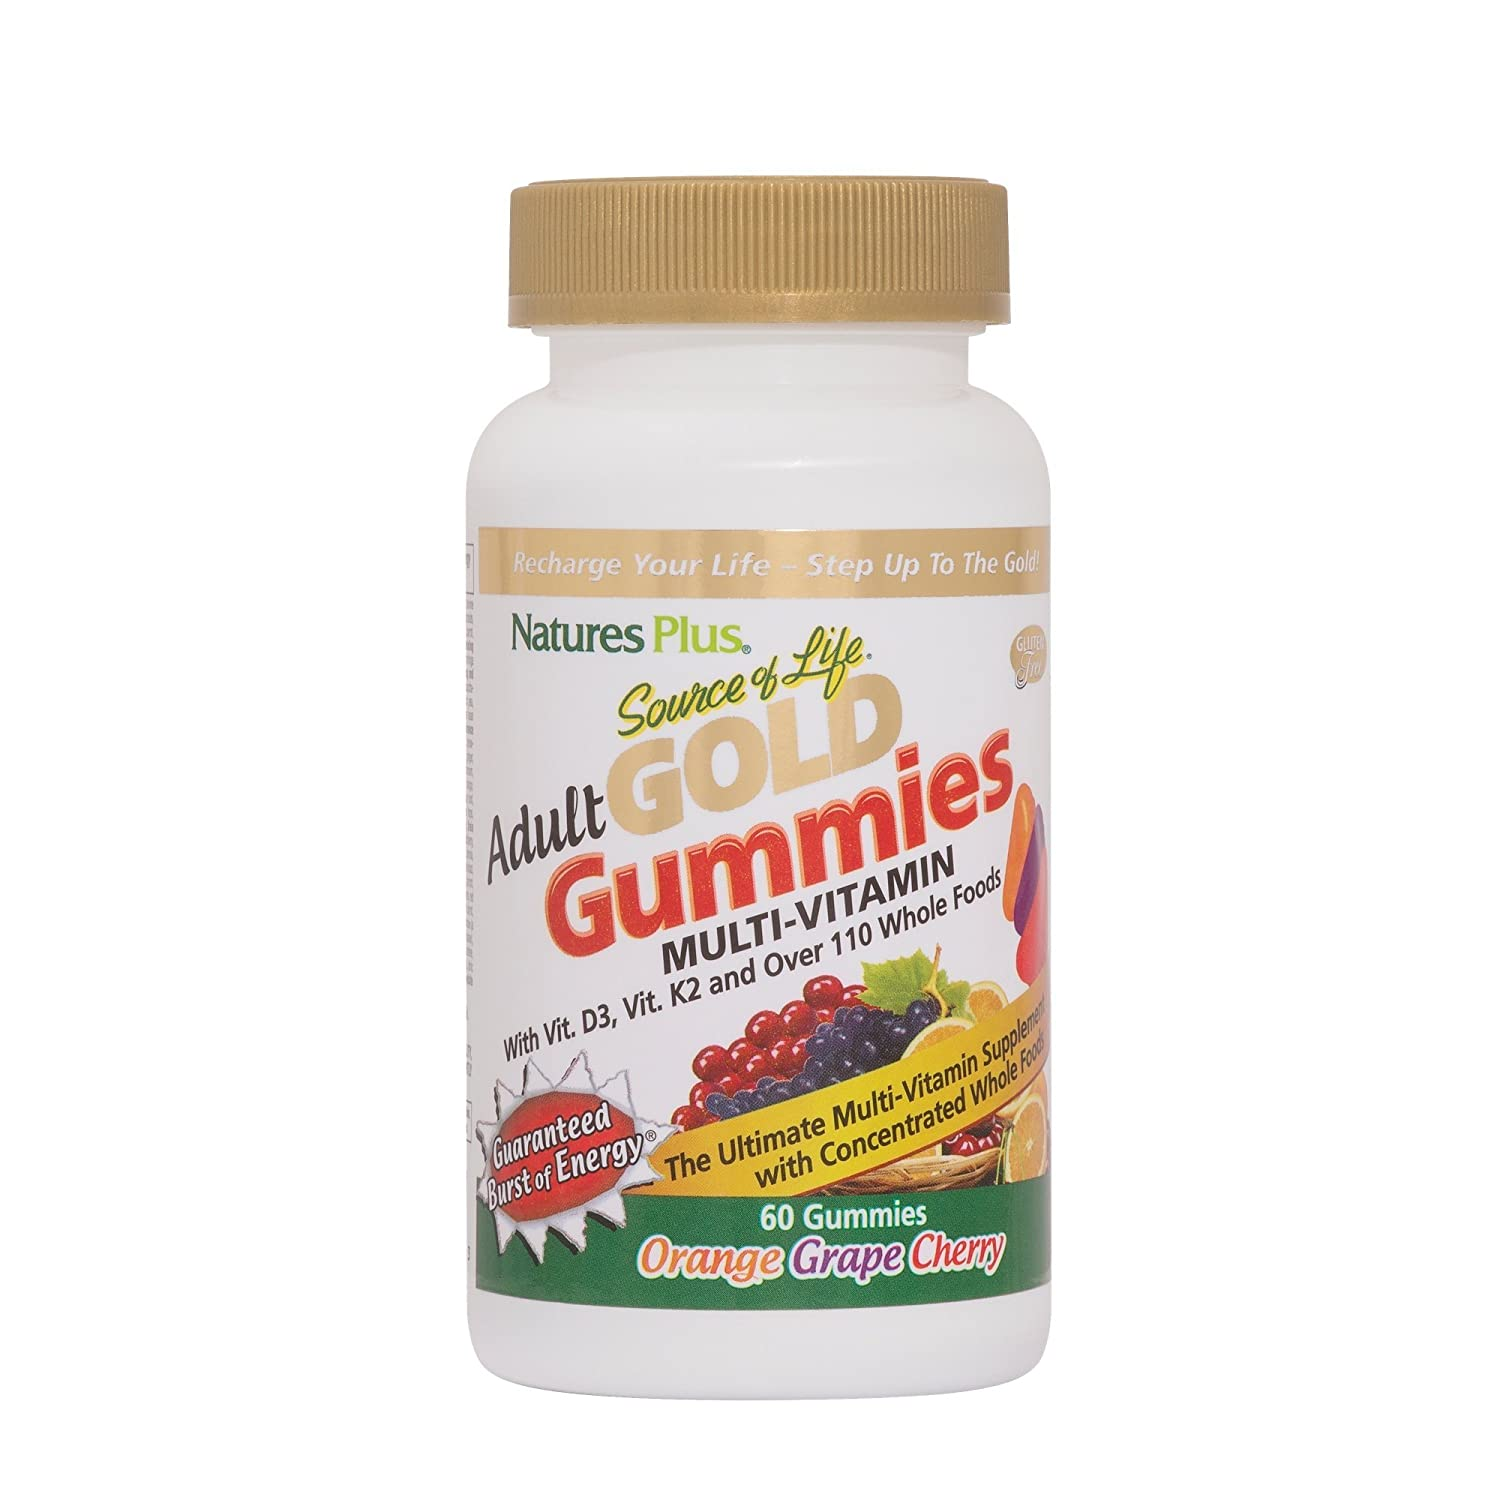 NaturesPlus Source of Life Gold Adult Multivitamin Gummies – 60 Whole Food Gummies – Complete Daily Vitamin Supplement – Free Radical Defense, Energy Support – Gluten-Free – 30 Total Servings